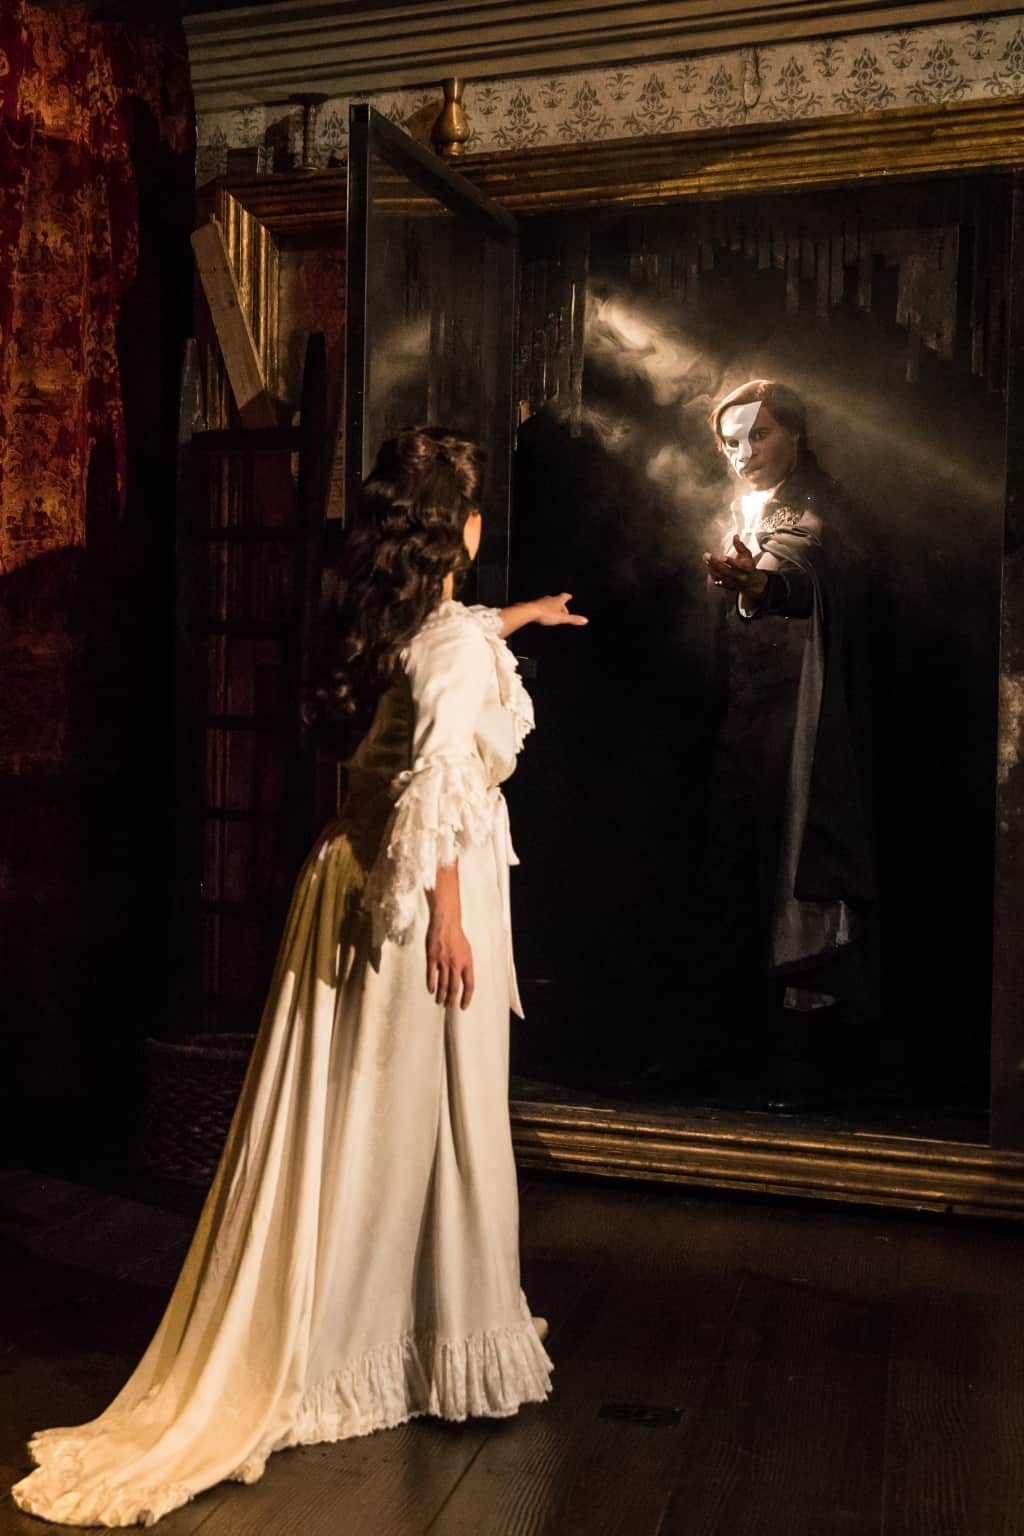 Review of The Phantom of the Opera, on tour at the Orpheum in Minneapolis